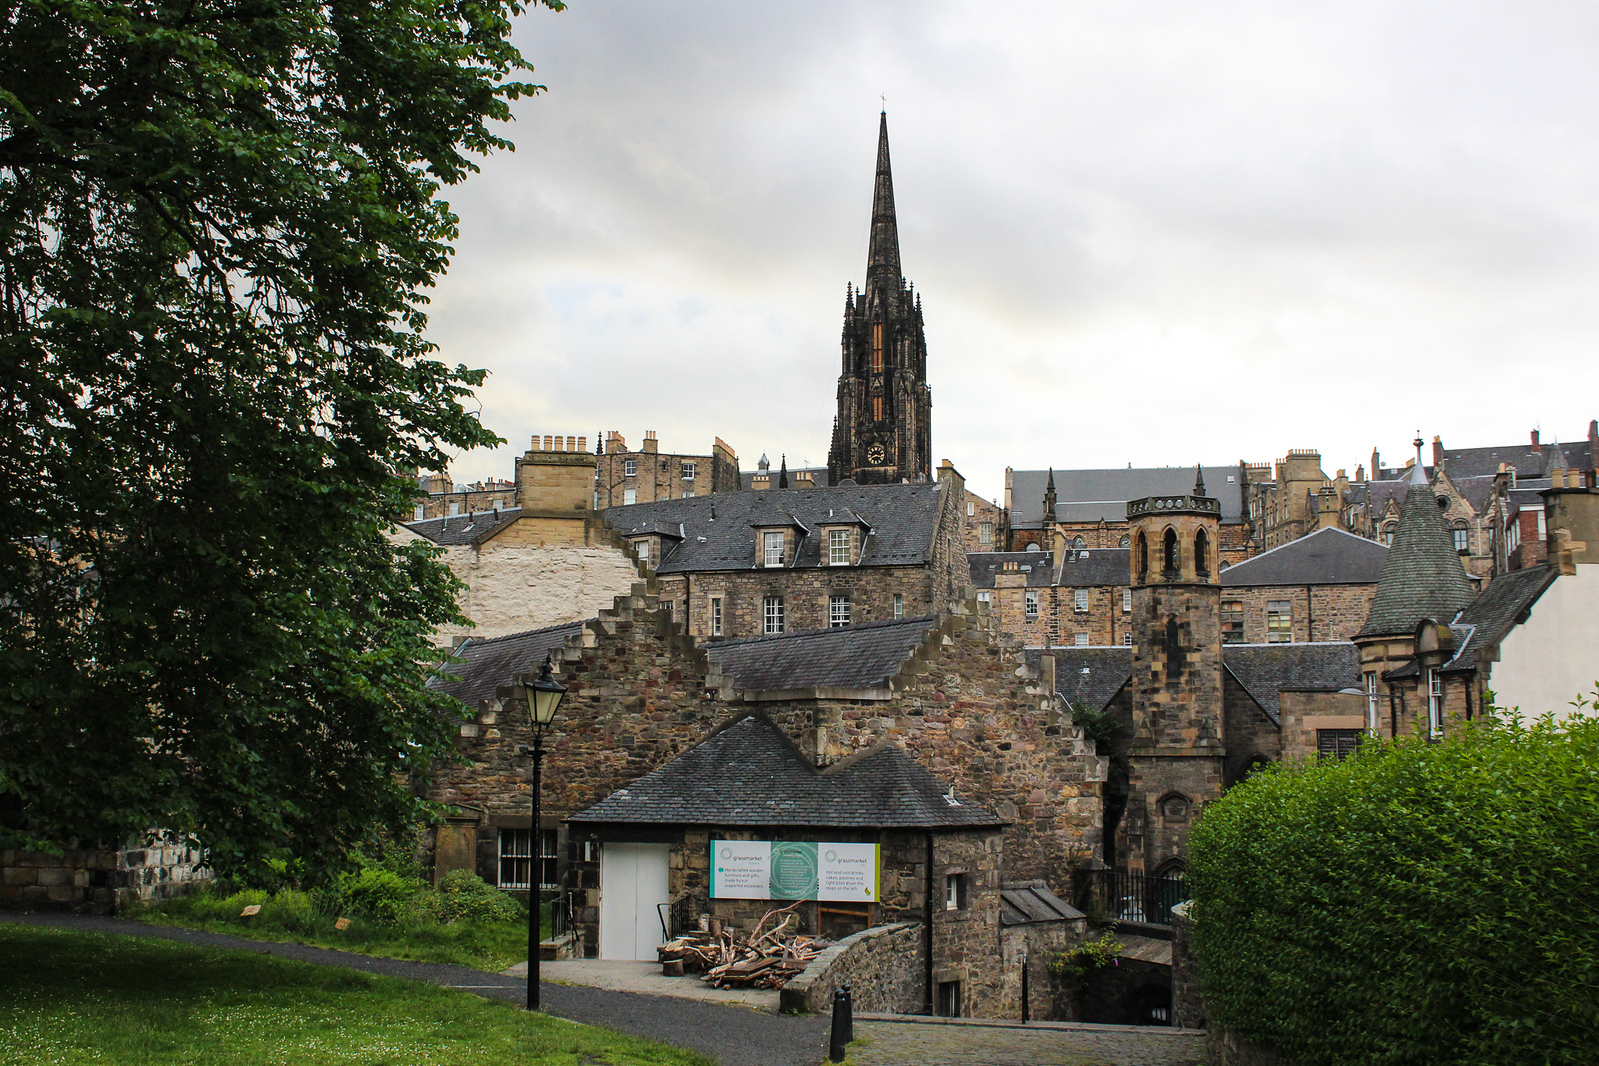 trip to edinburgh scotland will take you to the old town